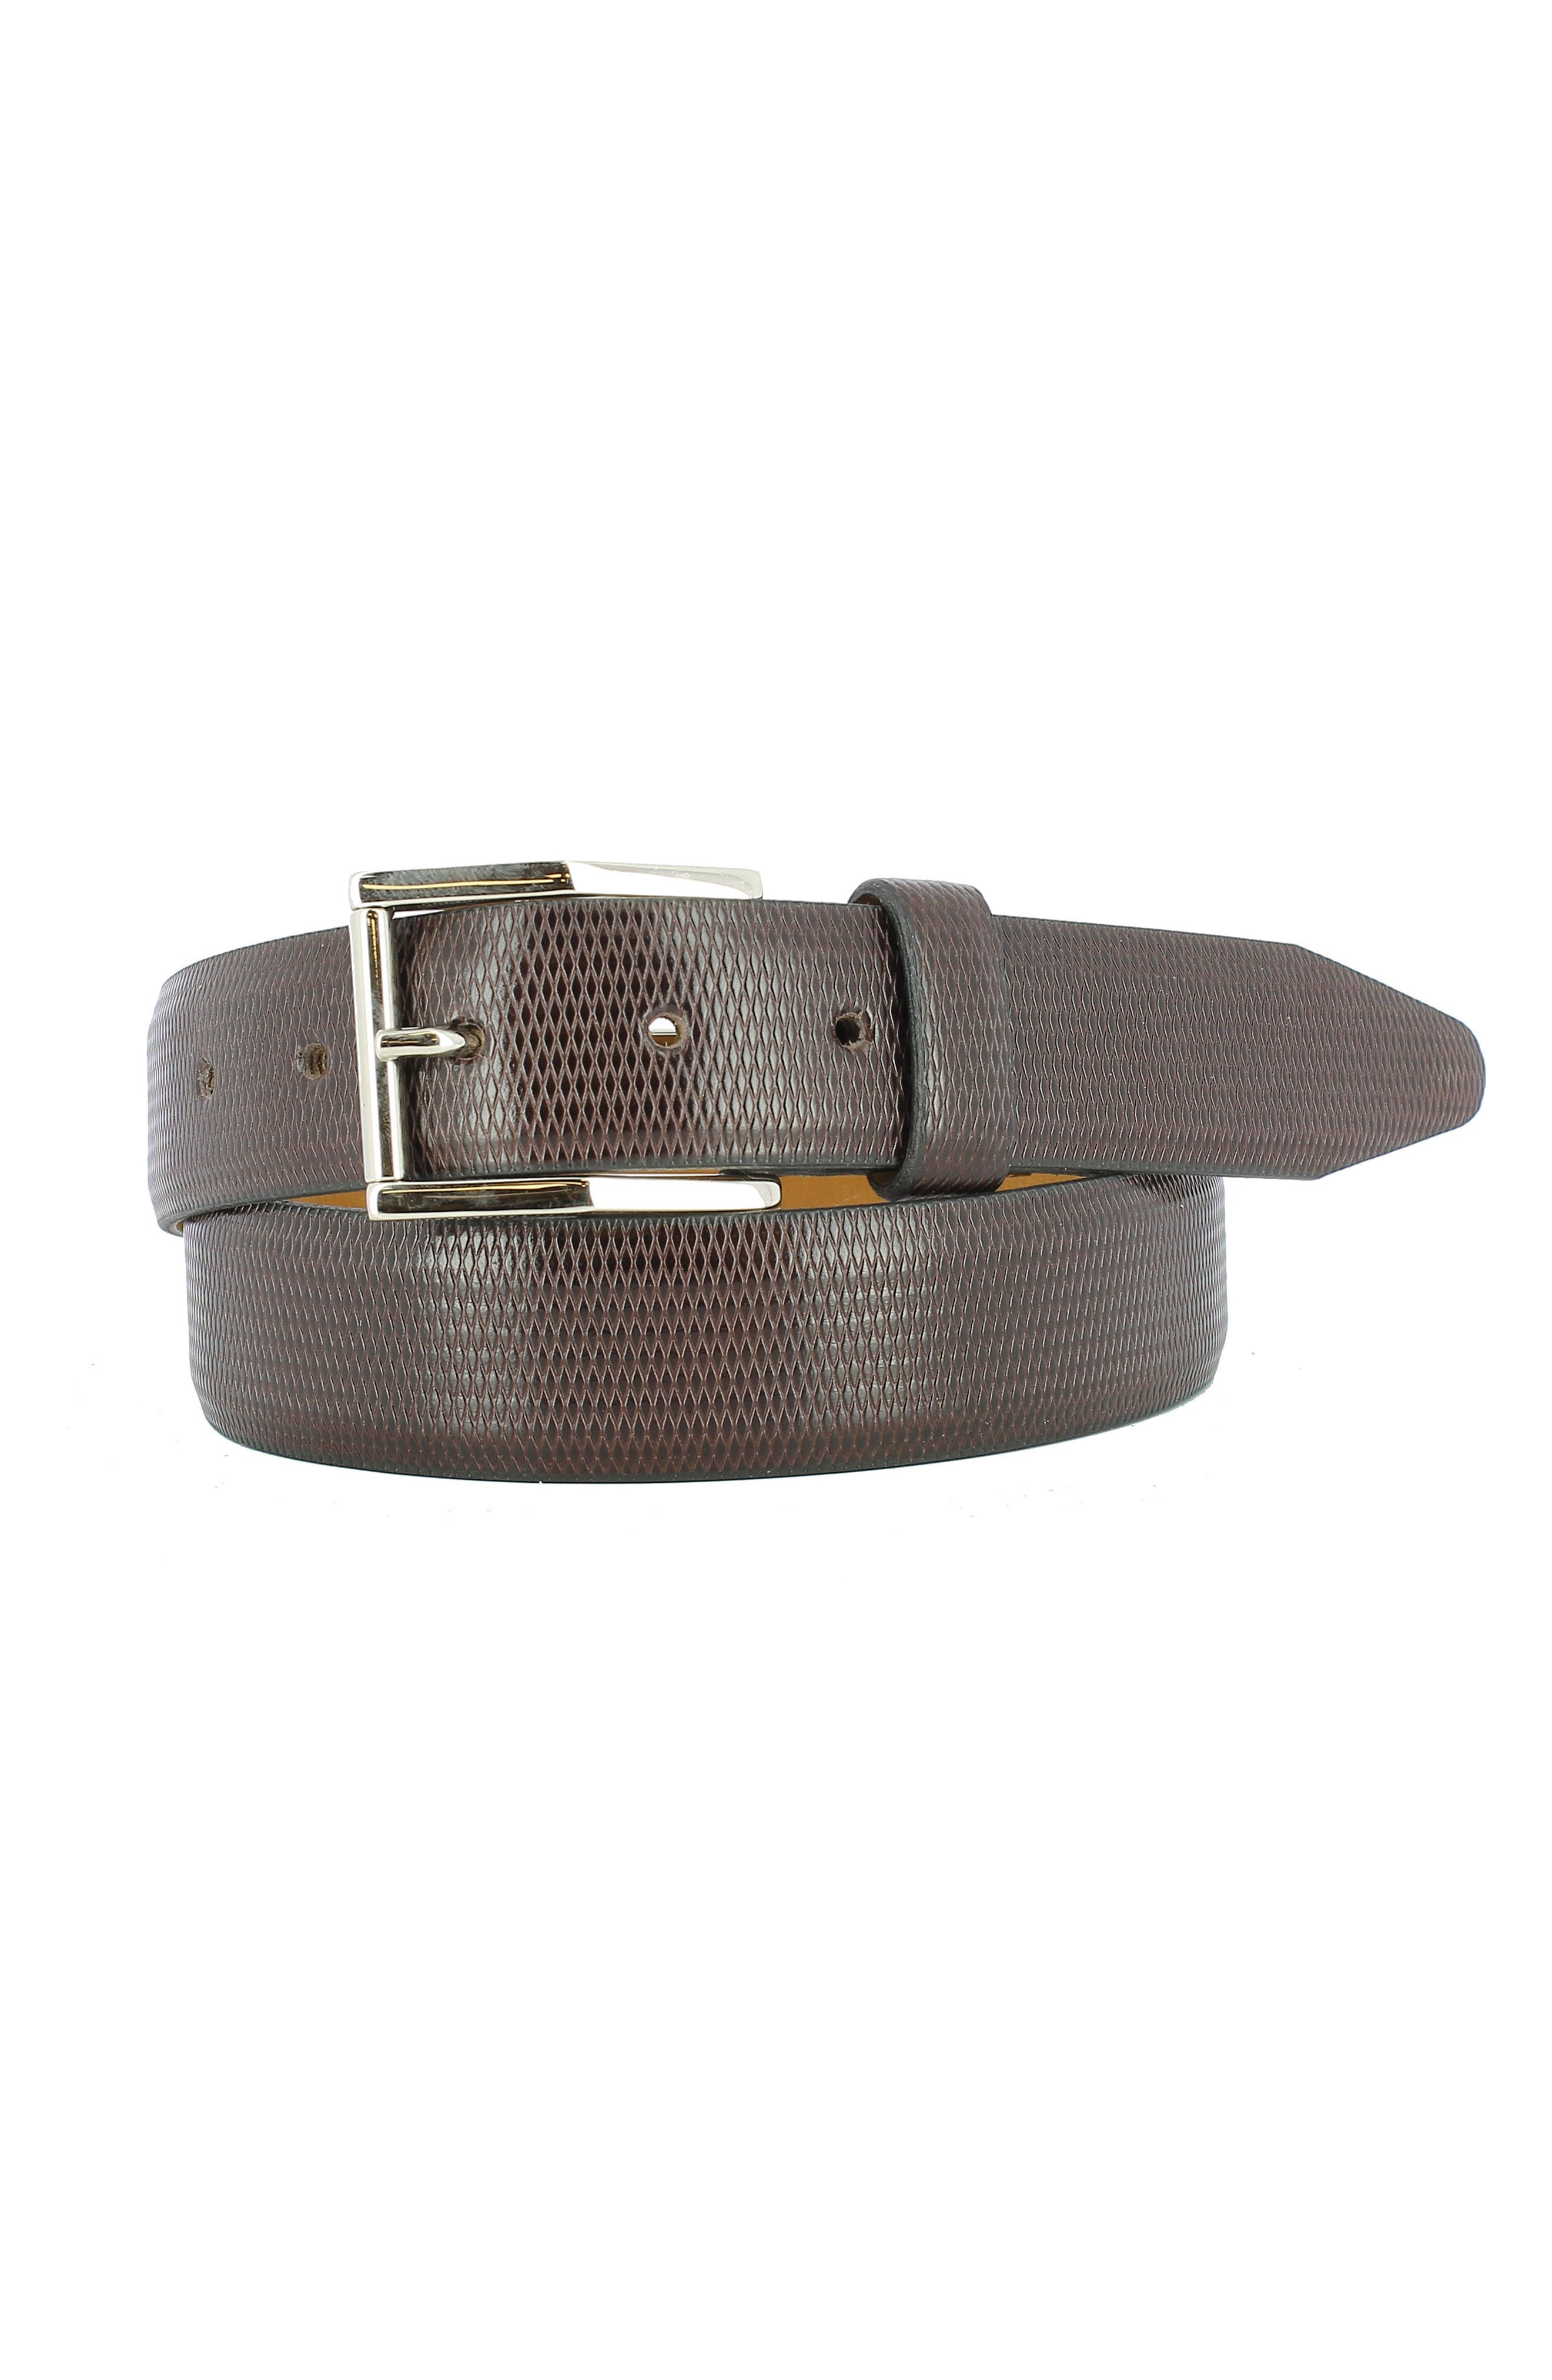 Gio Leather Belt,                         Main,                         color, Brown